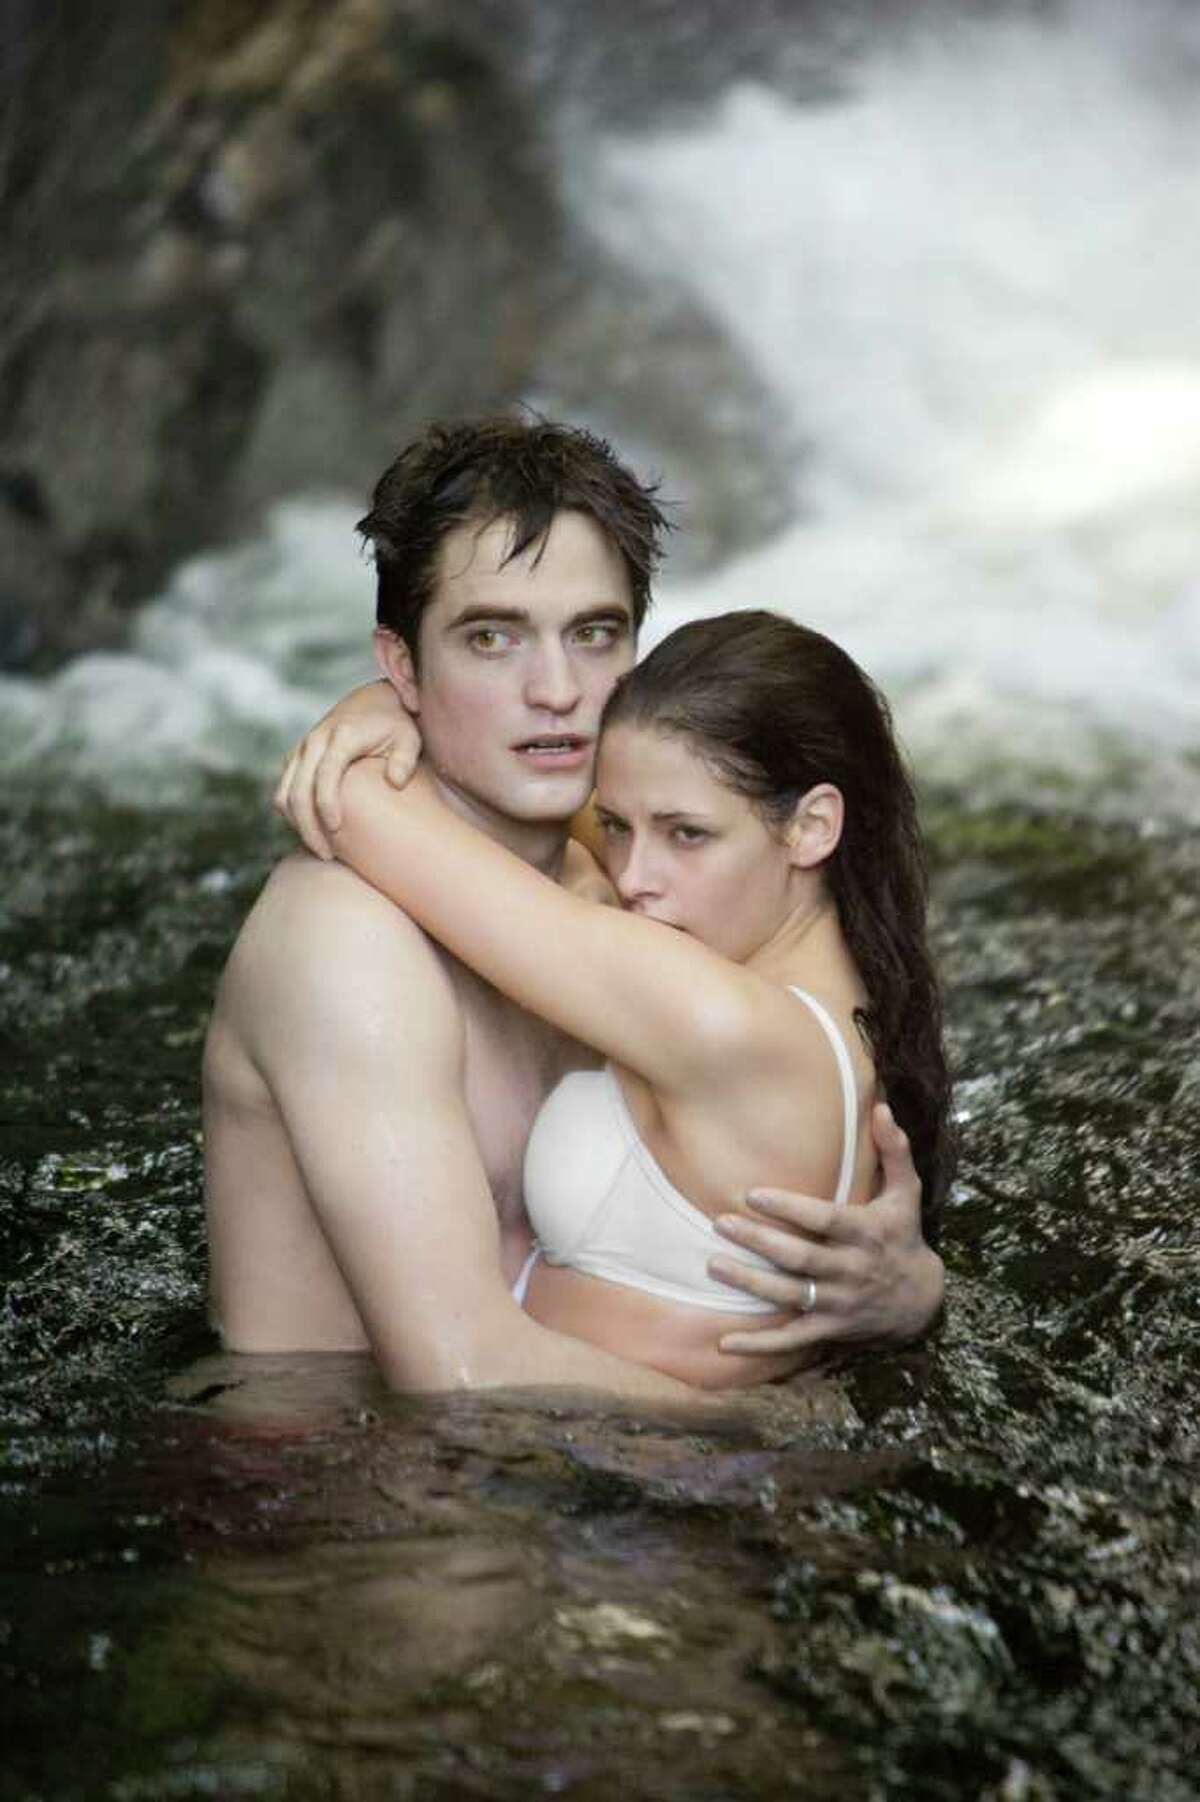 """Whether Bella (Kristen Stewart) knows it or not, Robert Pattinson's character comes from a long tradition of supernatural sexiness. """"The Twilight Saga: Breaking Dawn - Part 1"""" opens Friday."""